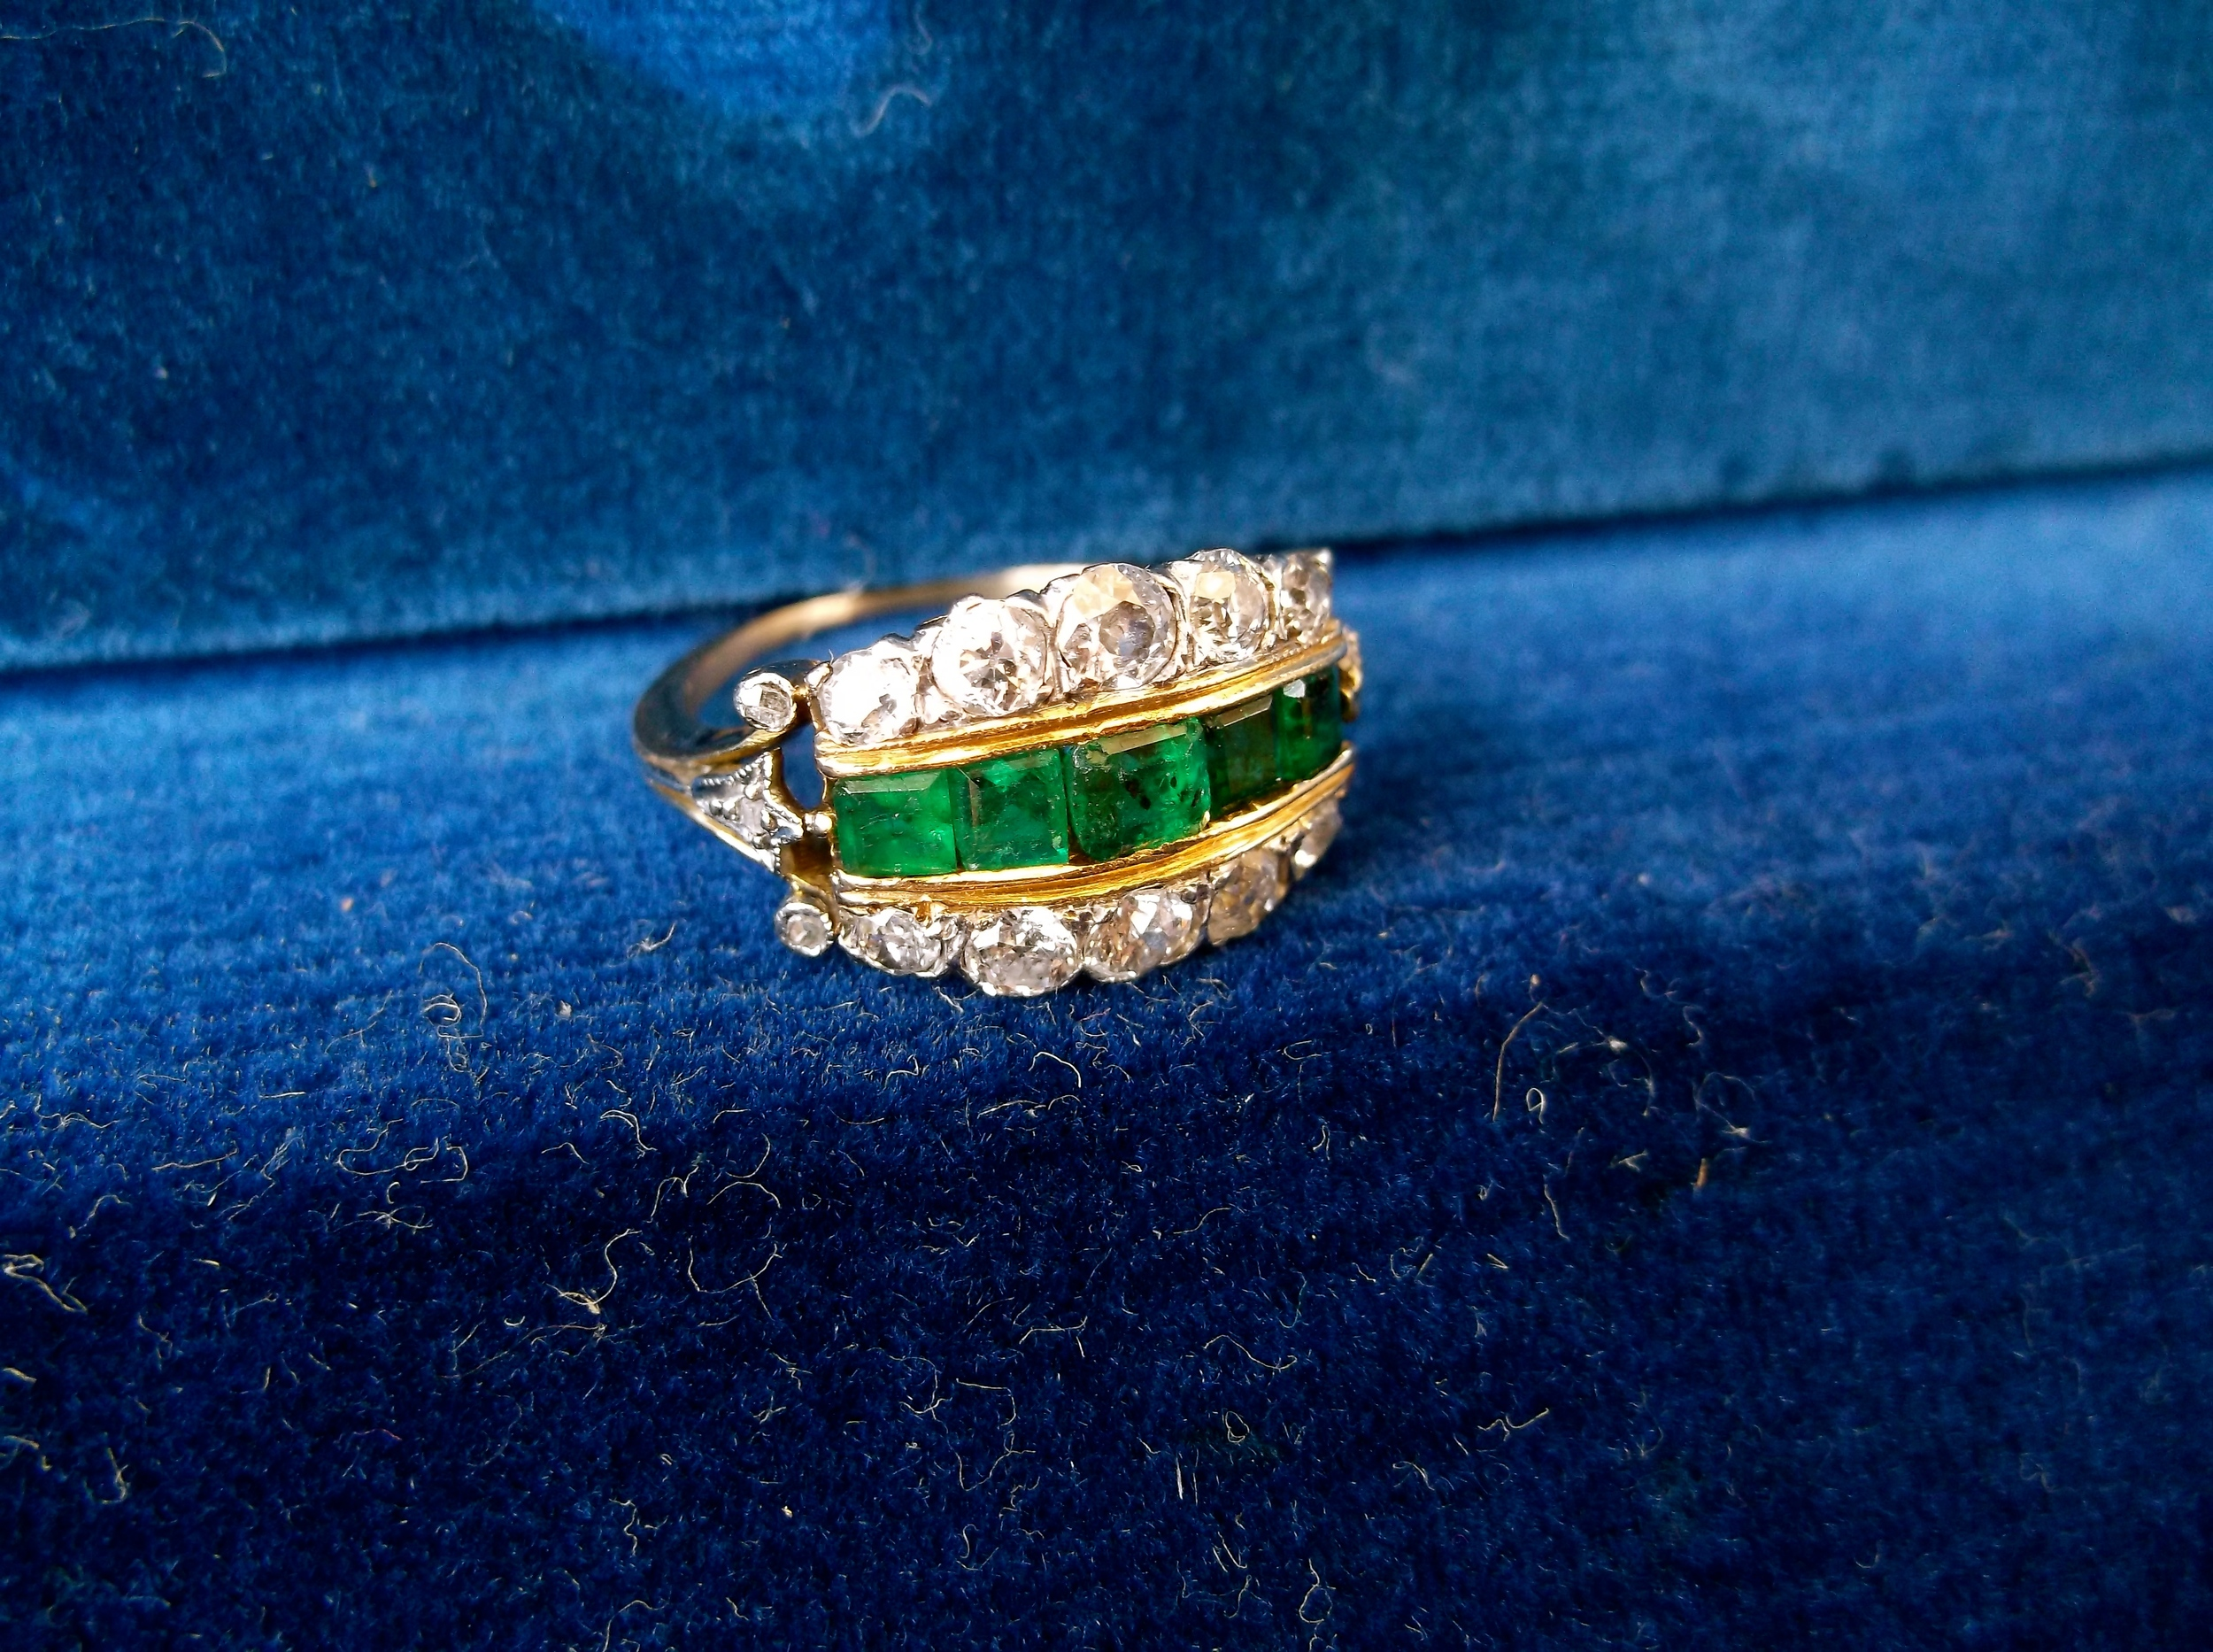 SOLD - Edwardian Era (1910-1914) Old European cut diamond and emerald ring set in platinum on yellow gold.